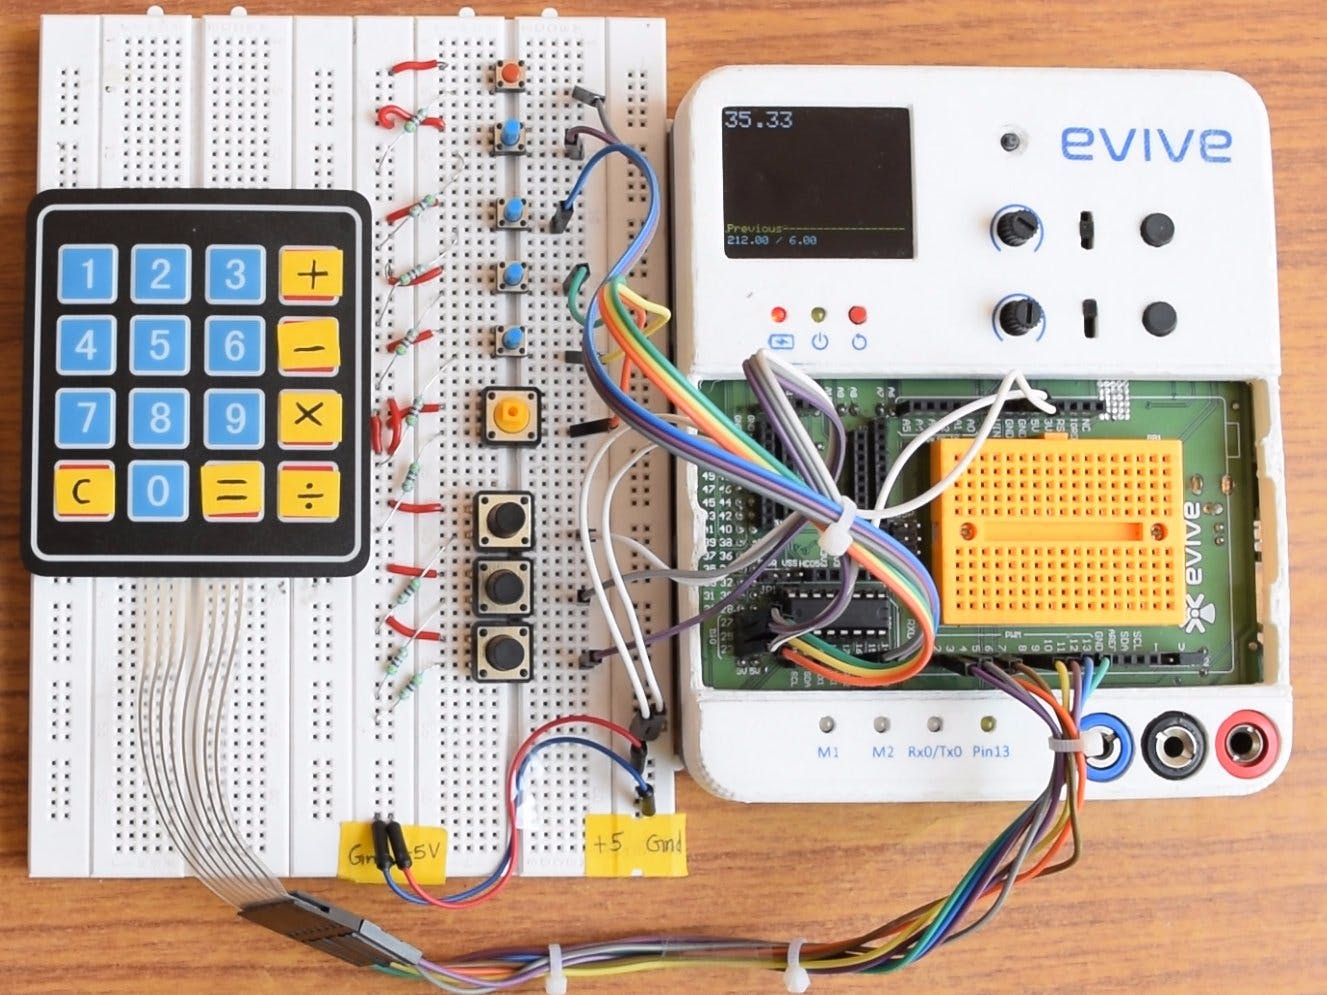 Scientific Calculator on Evive (powered by Arduino MEGA)